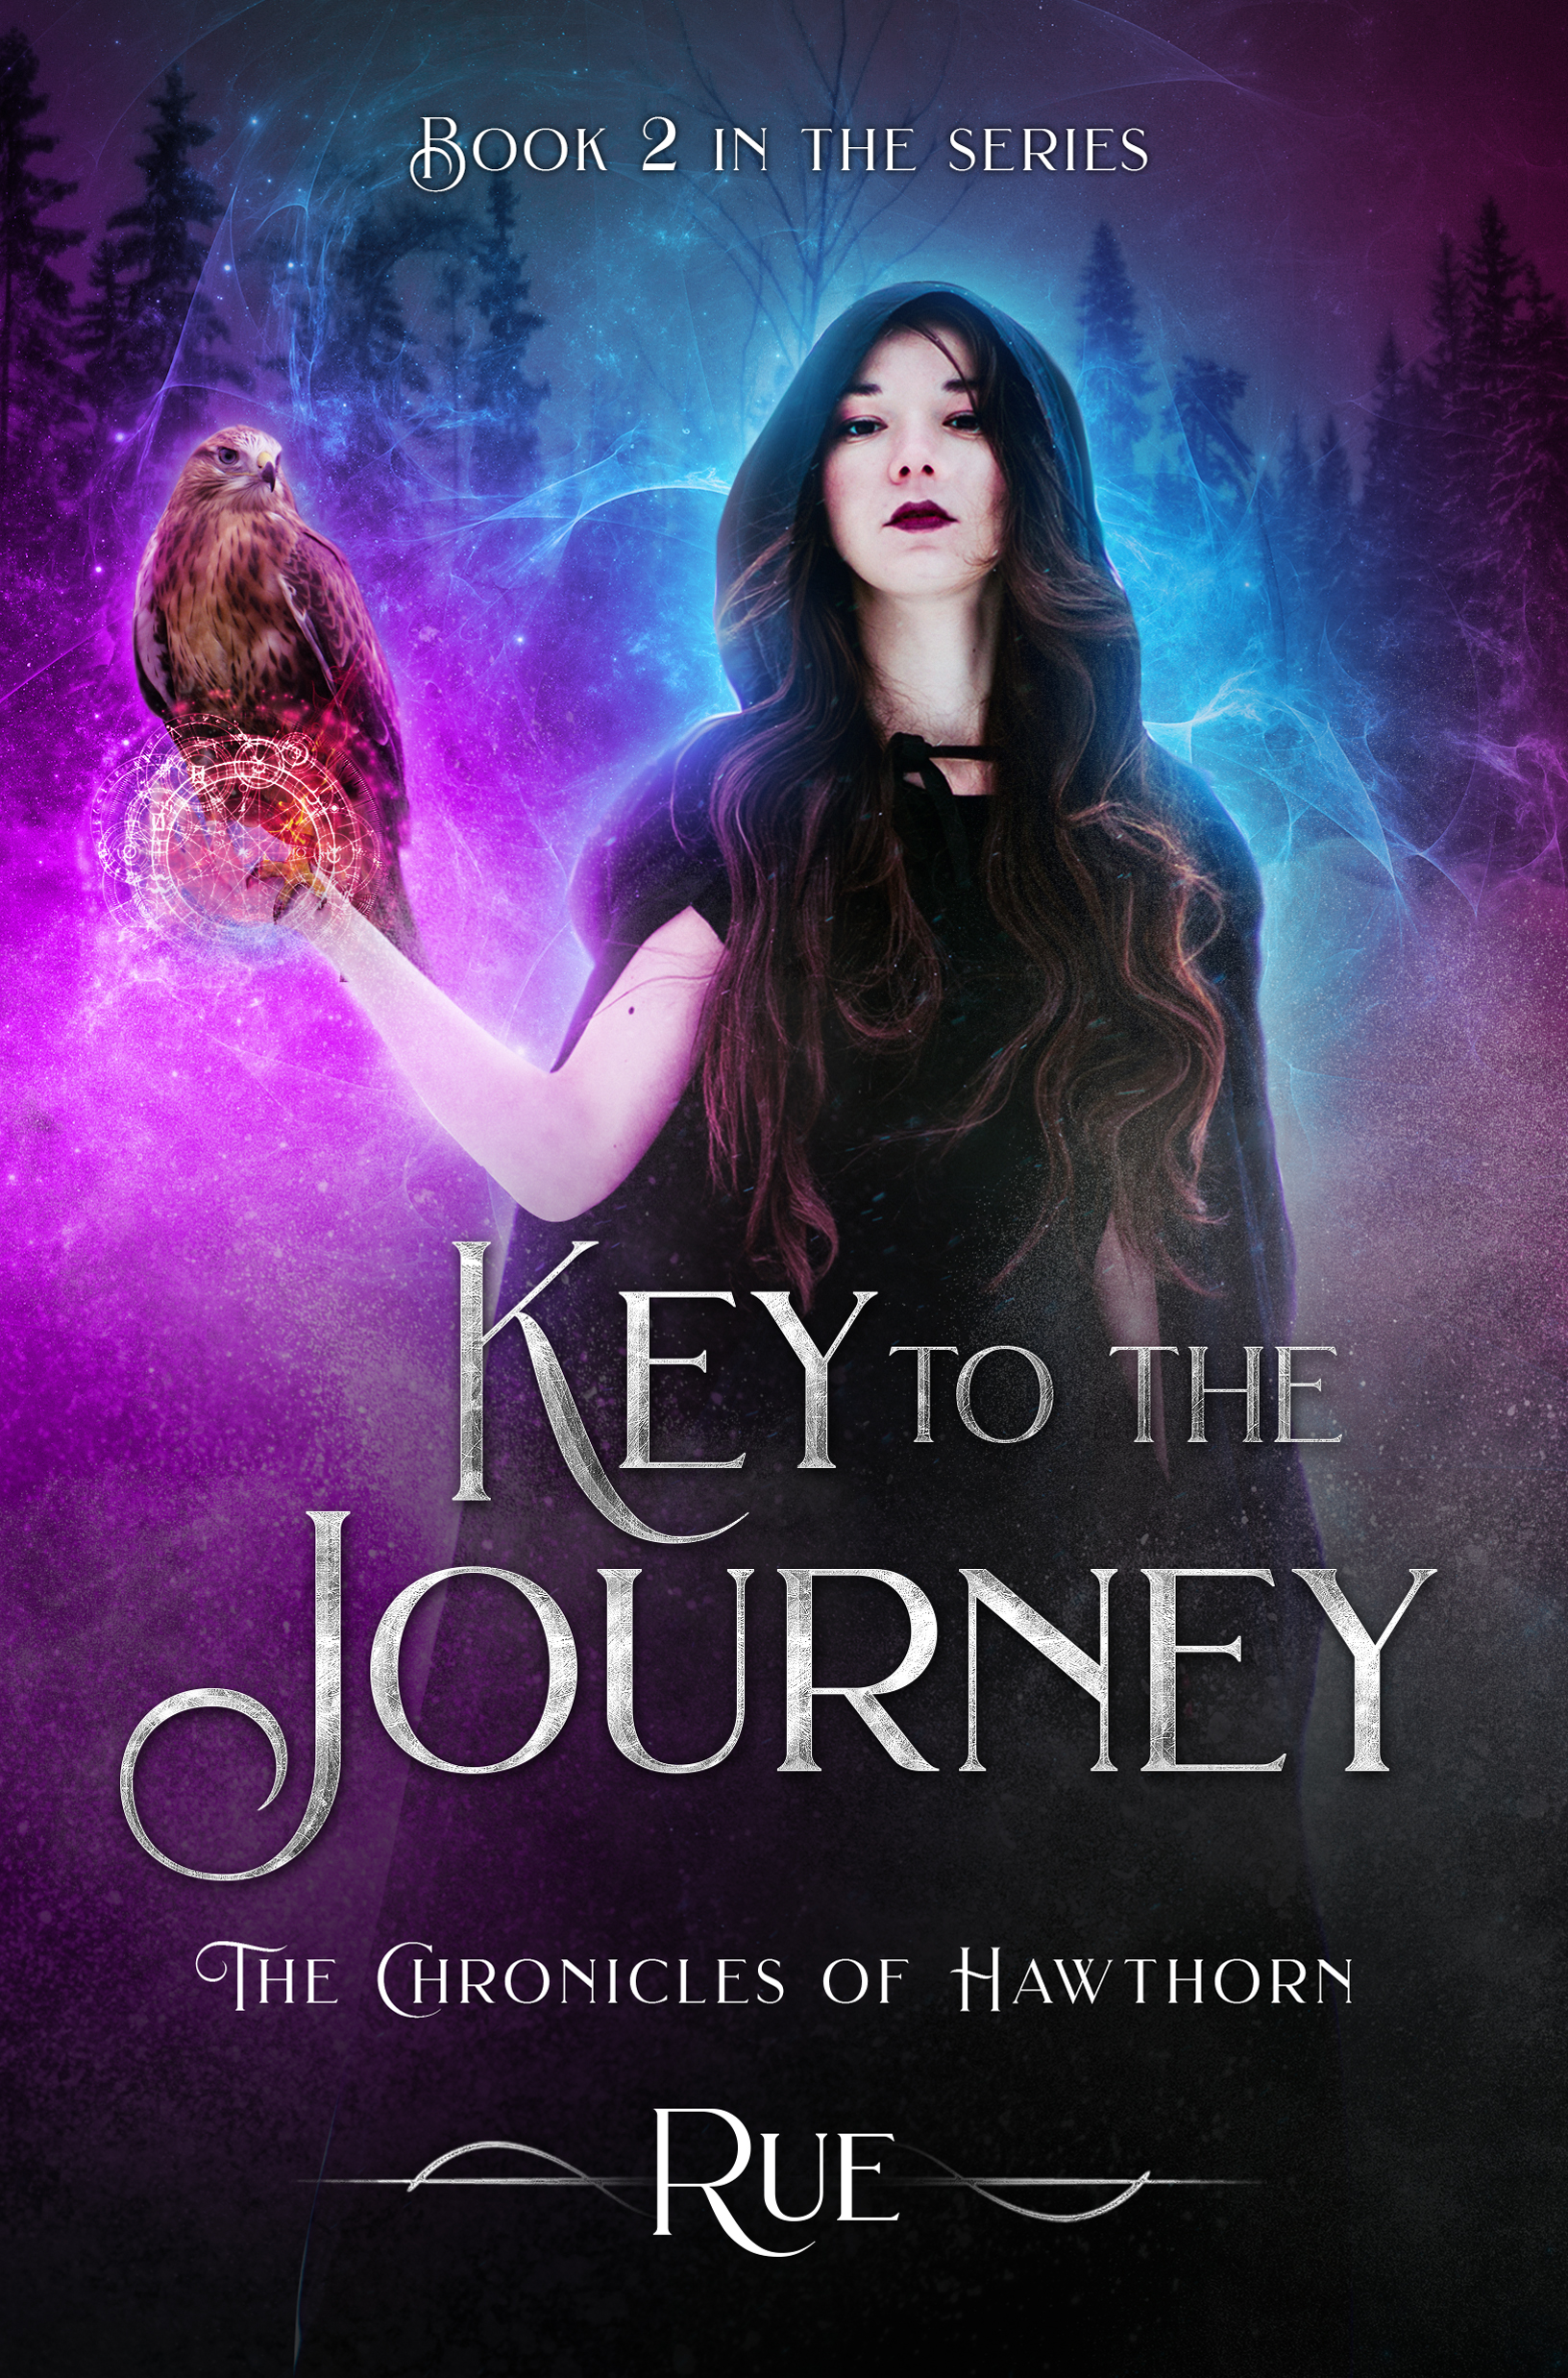 Best YA Fantasy for girls Book 2 in The Chronicles of Hawthorn